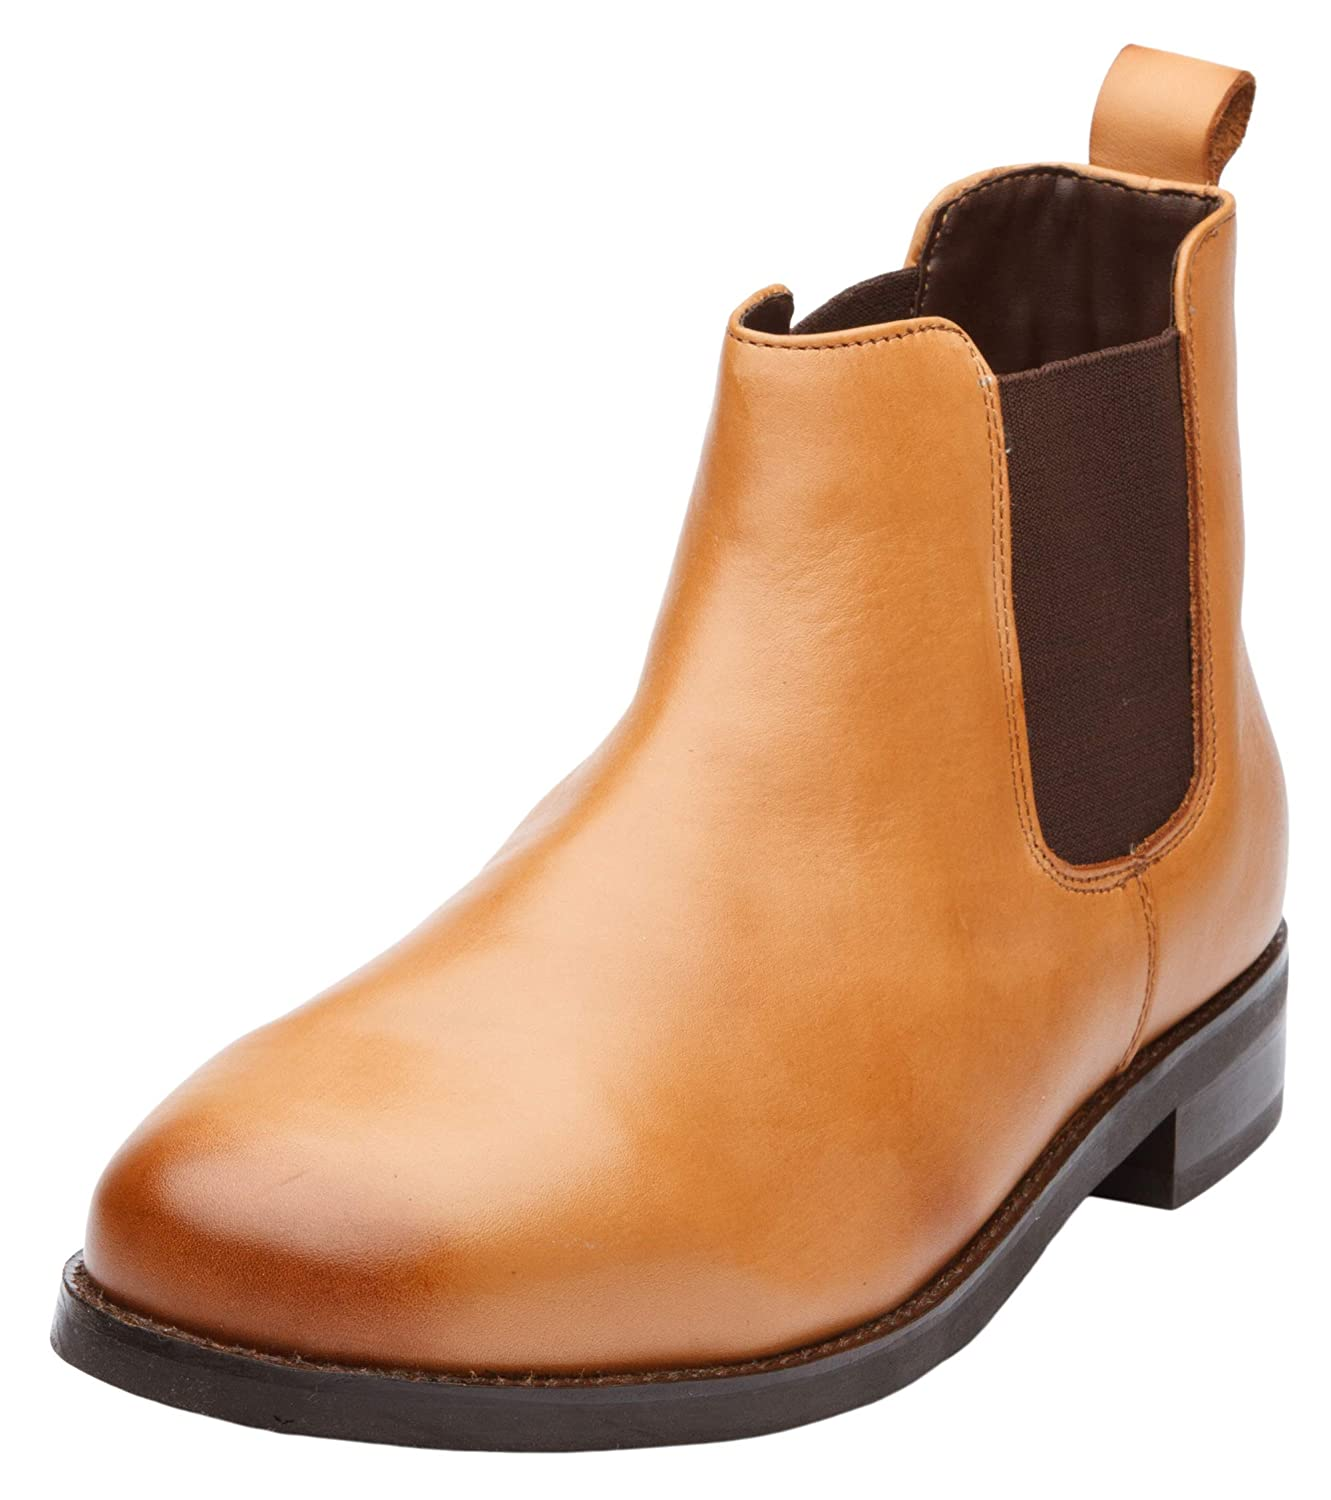 Dapper Shoes Co. Men's Classic Handcrafted Leather Chelsea Boots